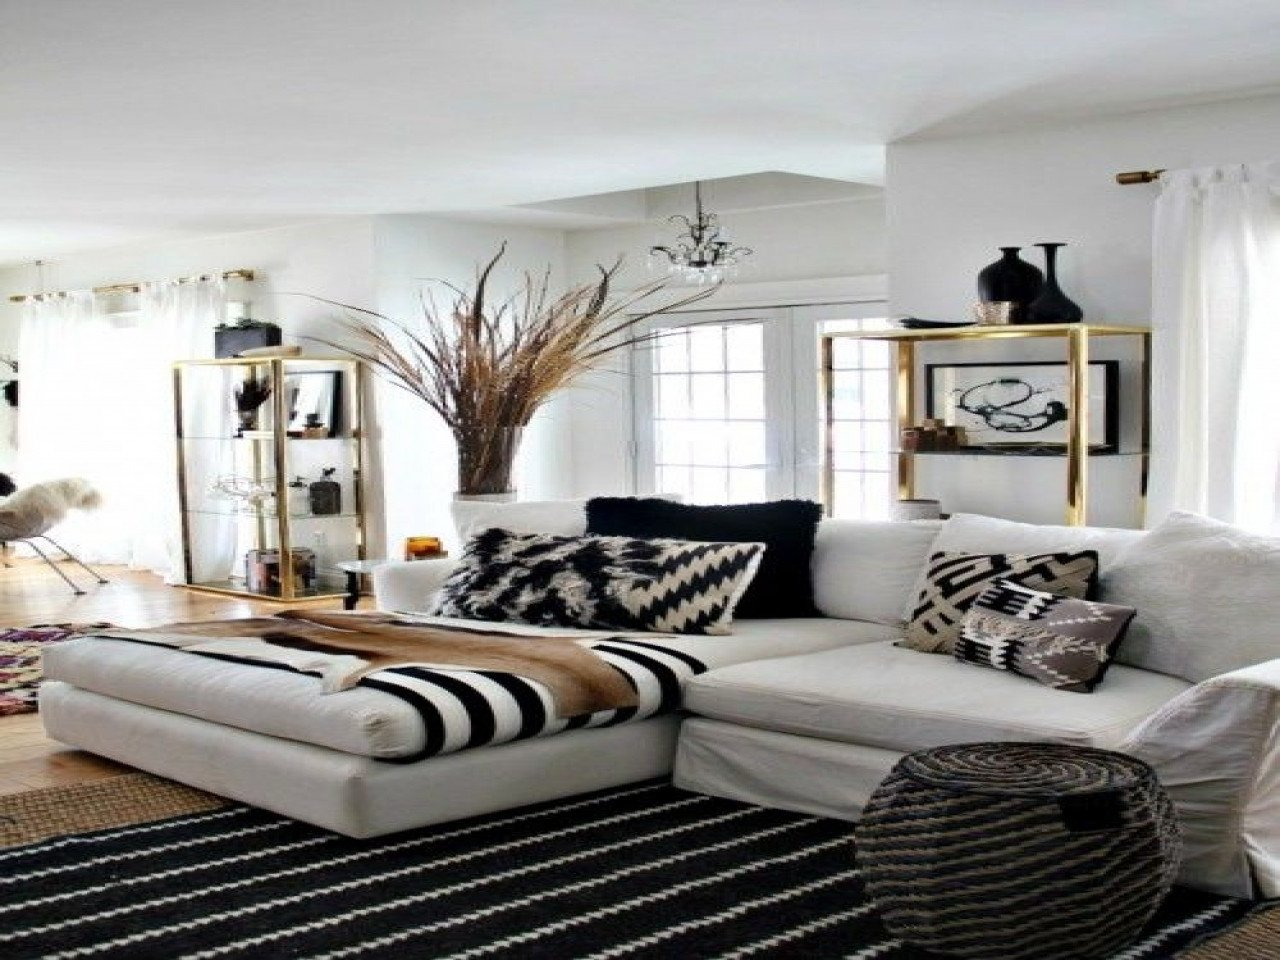 White and Gold Room Decor Unique Wallpaper Designs for Bedrooms Ideas Black White and Gold Room Decor Black White and Gold